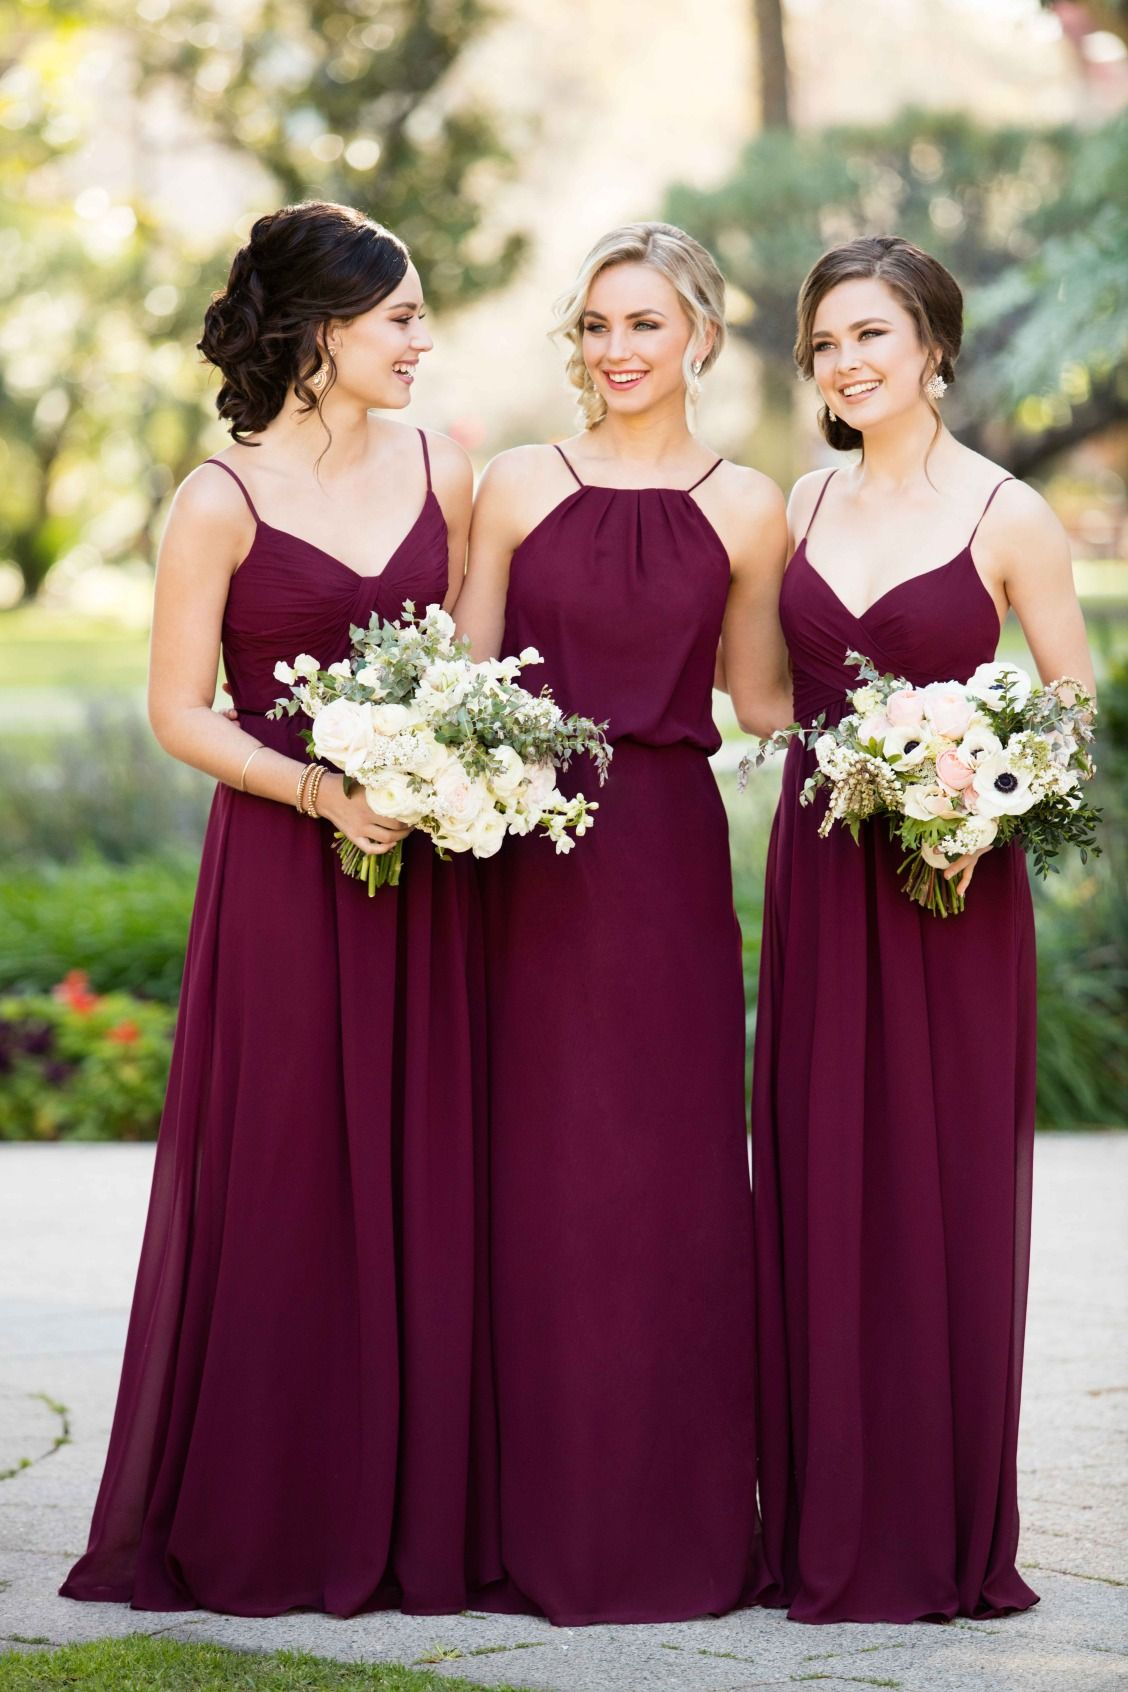 598995770c1 Burgundy Bridesmaids Dress for a mix and match bridal party!